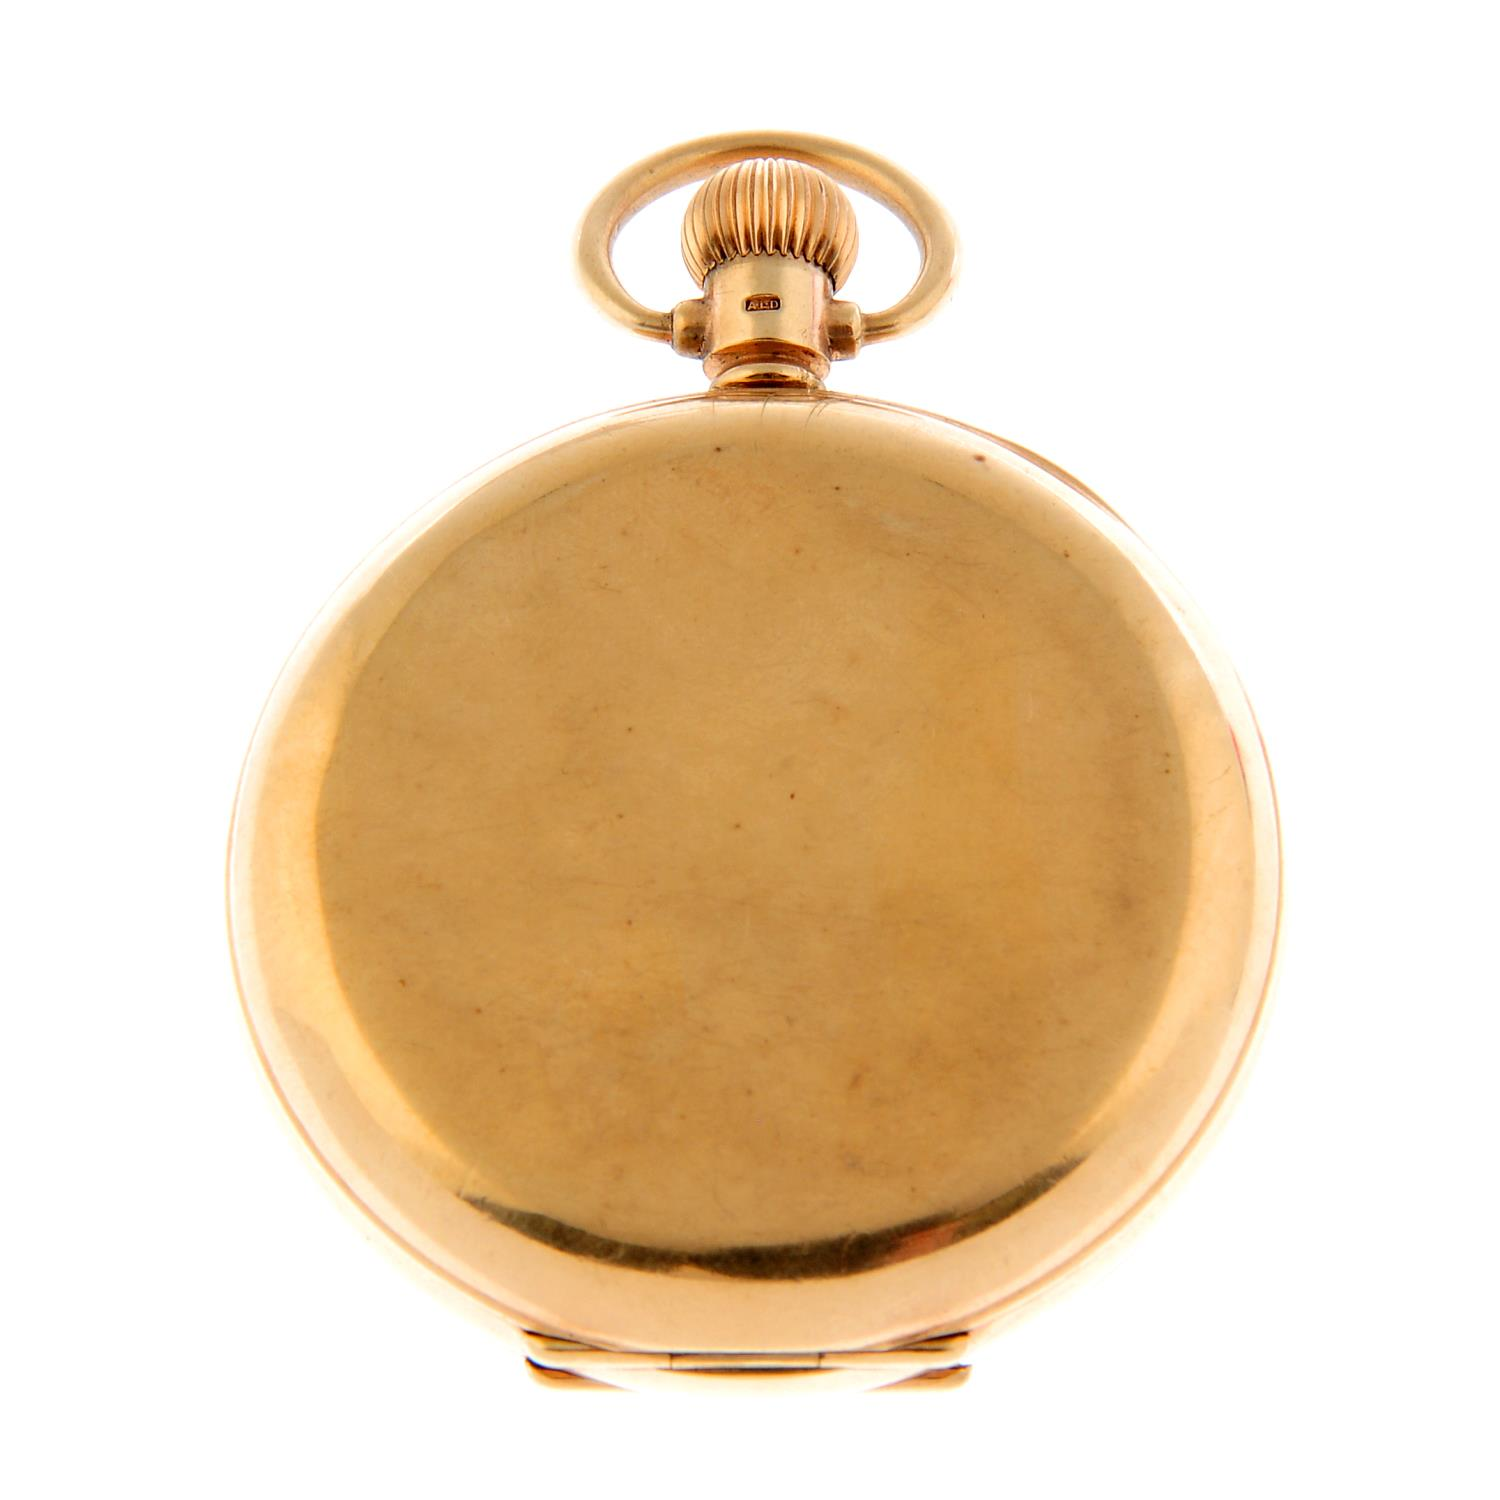 A full hunter pocket watch by Federal. - Image 3 of 4